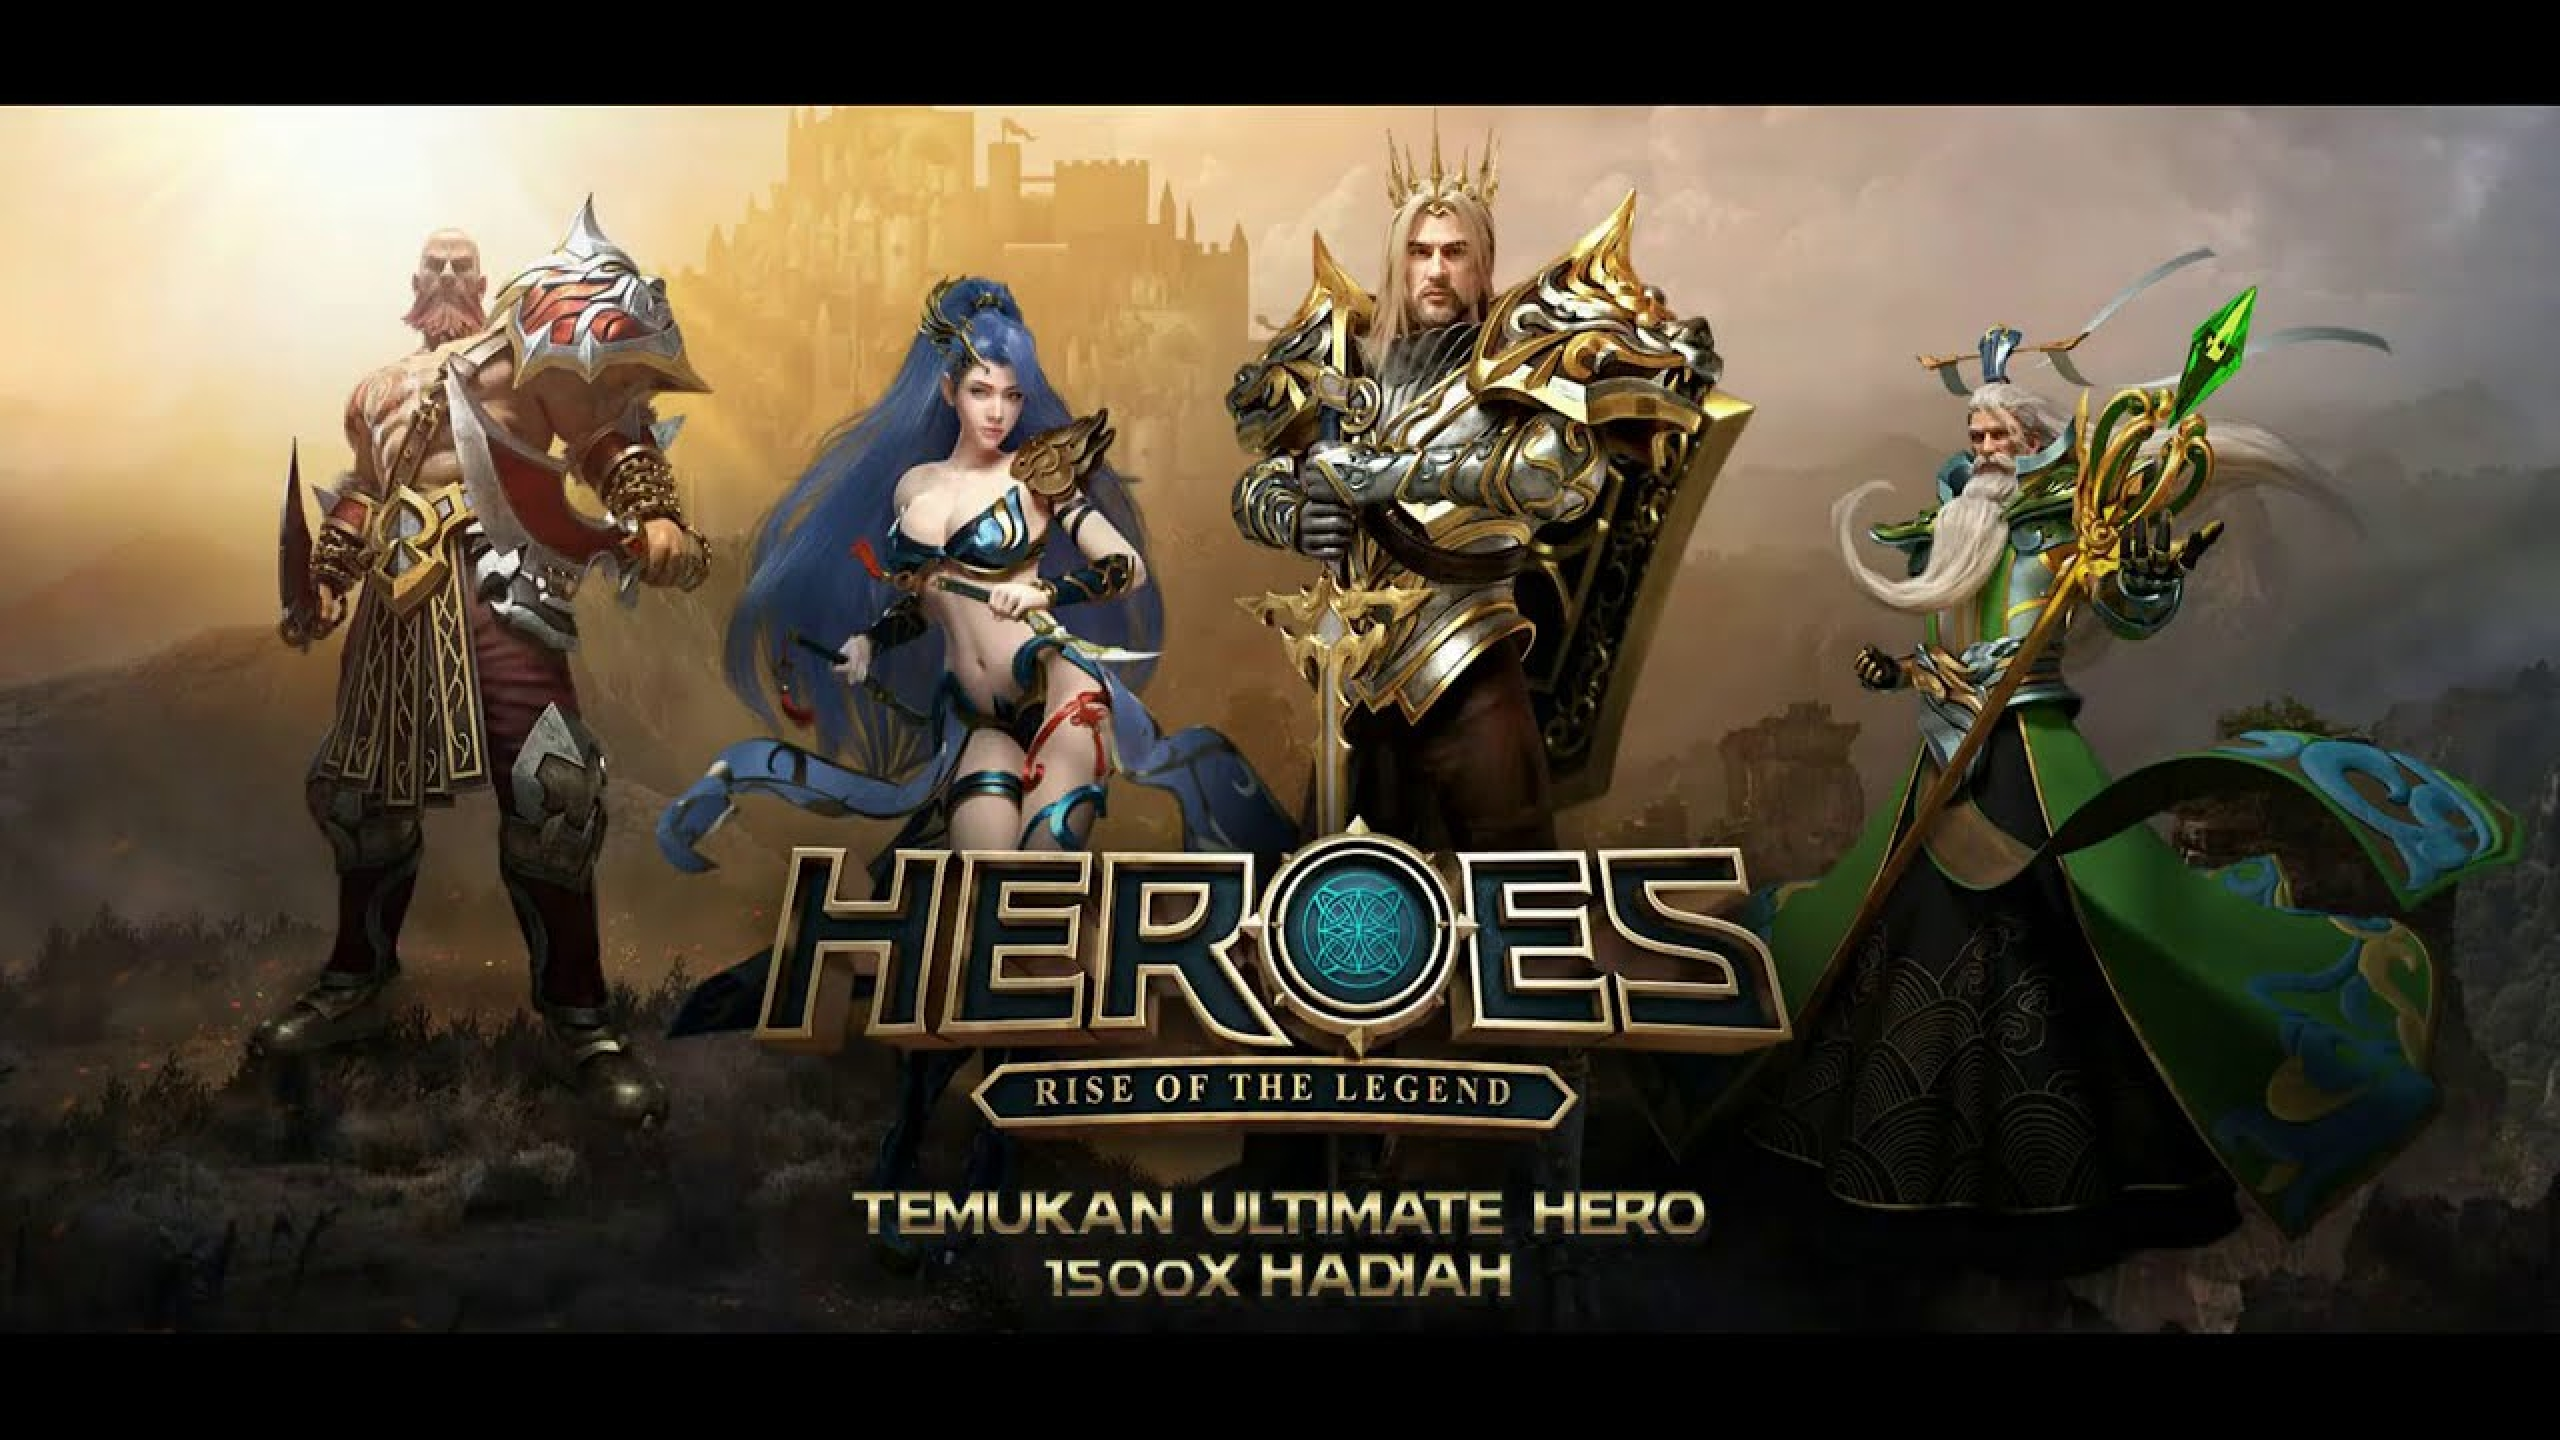 The Heroes Rise of the Legend Online Slot Demo Game by Spadegaming